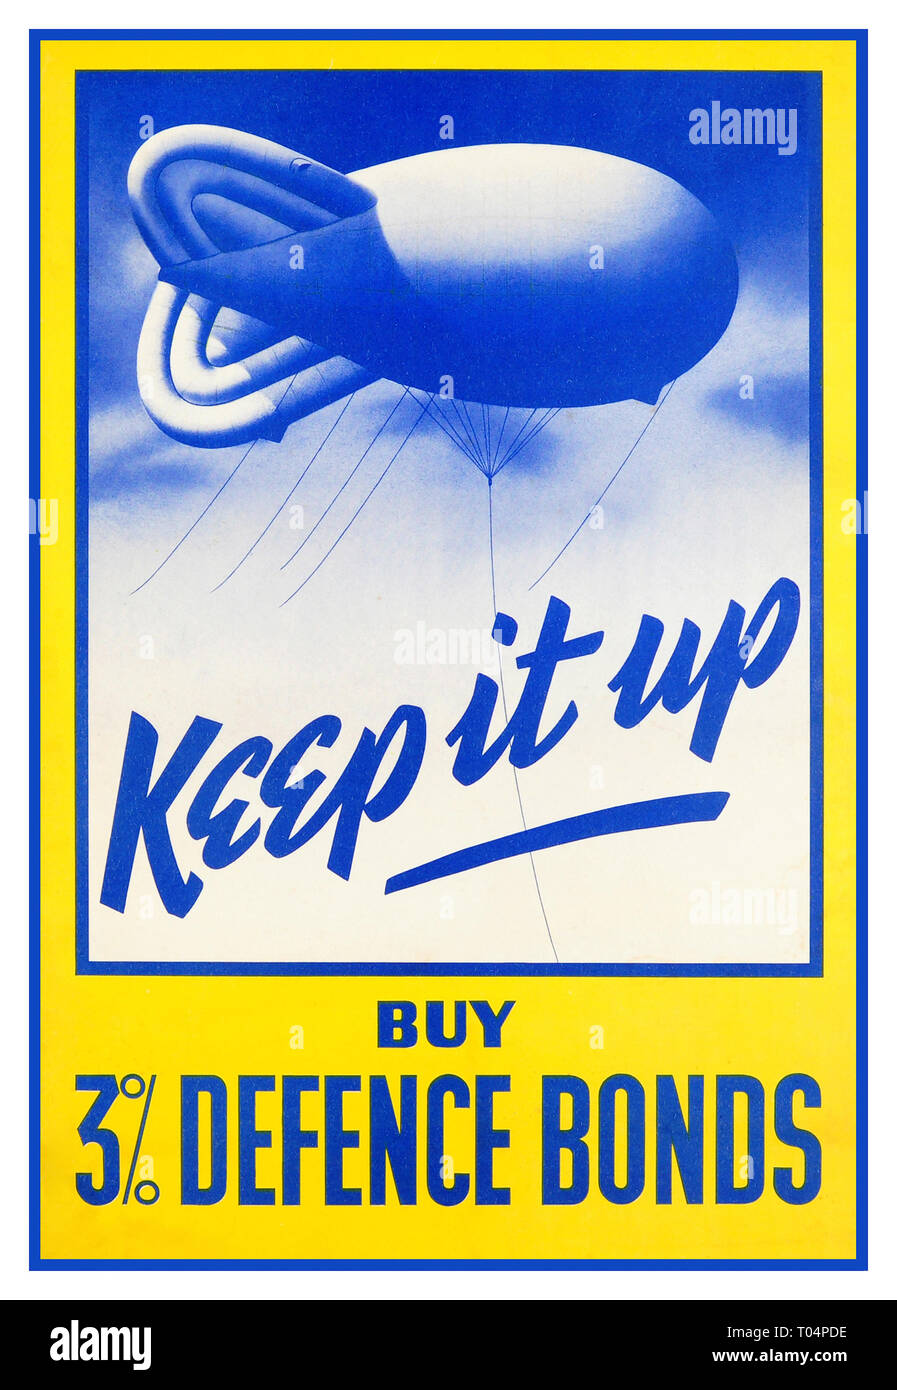 Original vintage World War Two poster: Keep it up – Buy 3% Defence Bonds. Colourful stylised image of a barrage balloon ('blimp') in the sky with stylised text in blue lettering, the rest of the text below in blue letters against a bright yellow background. Issued by the National Savings Committee, London; Scottish Savings Committee, Edinburgh; Ulster Savings Committee, Belfast. Printed for Her Majesty's Stationery Office by J. Weiner Ltd., London. Good condition, minor repaired tears on margins, backed on linen. Country:UK. Year:1940s. - Stock Image